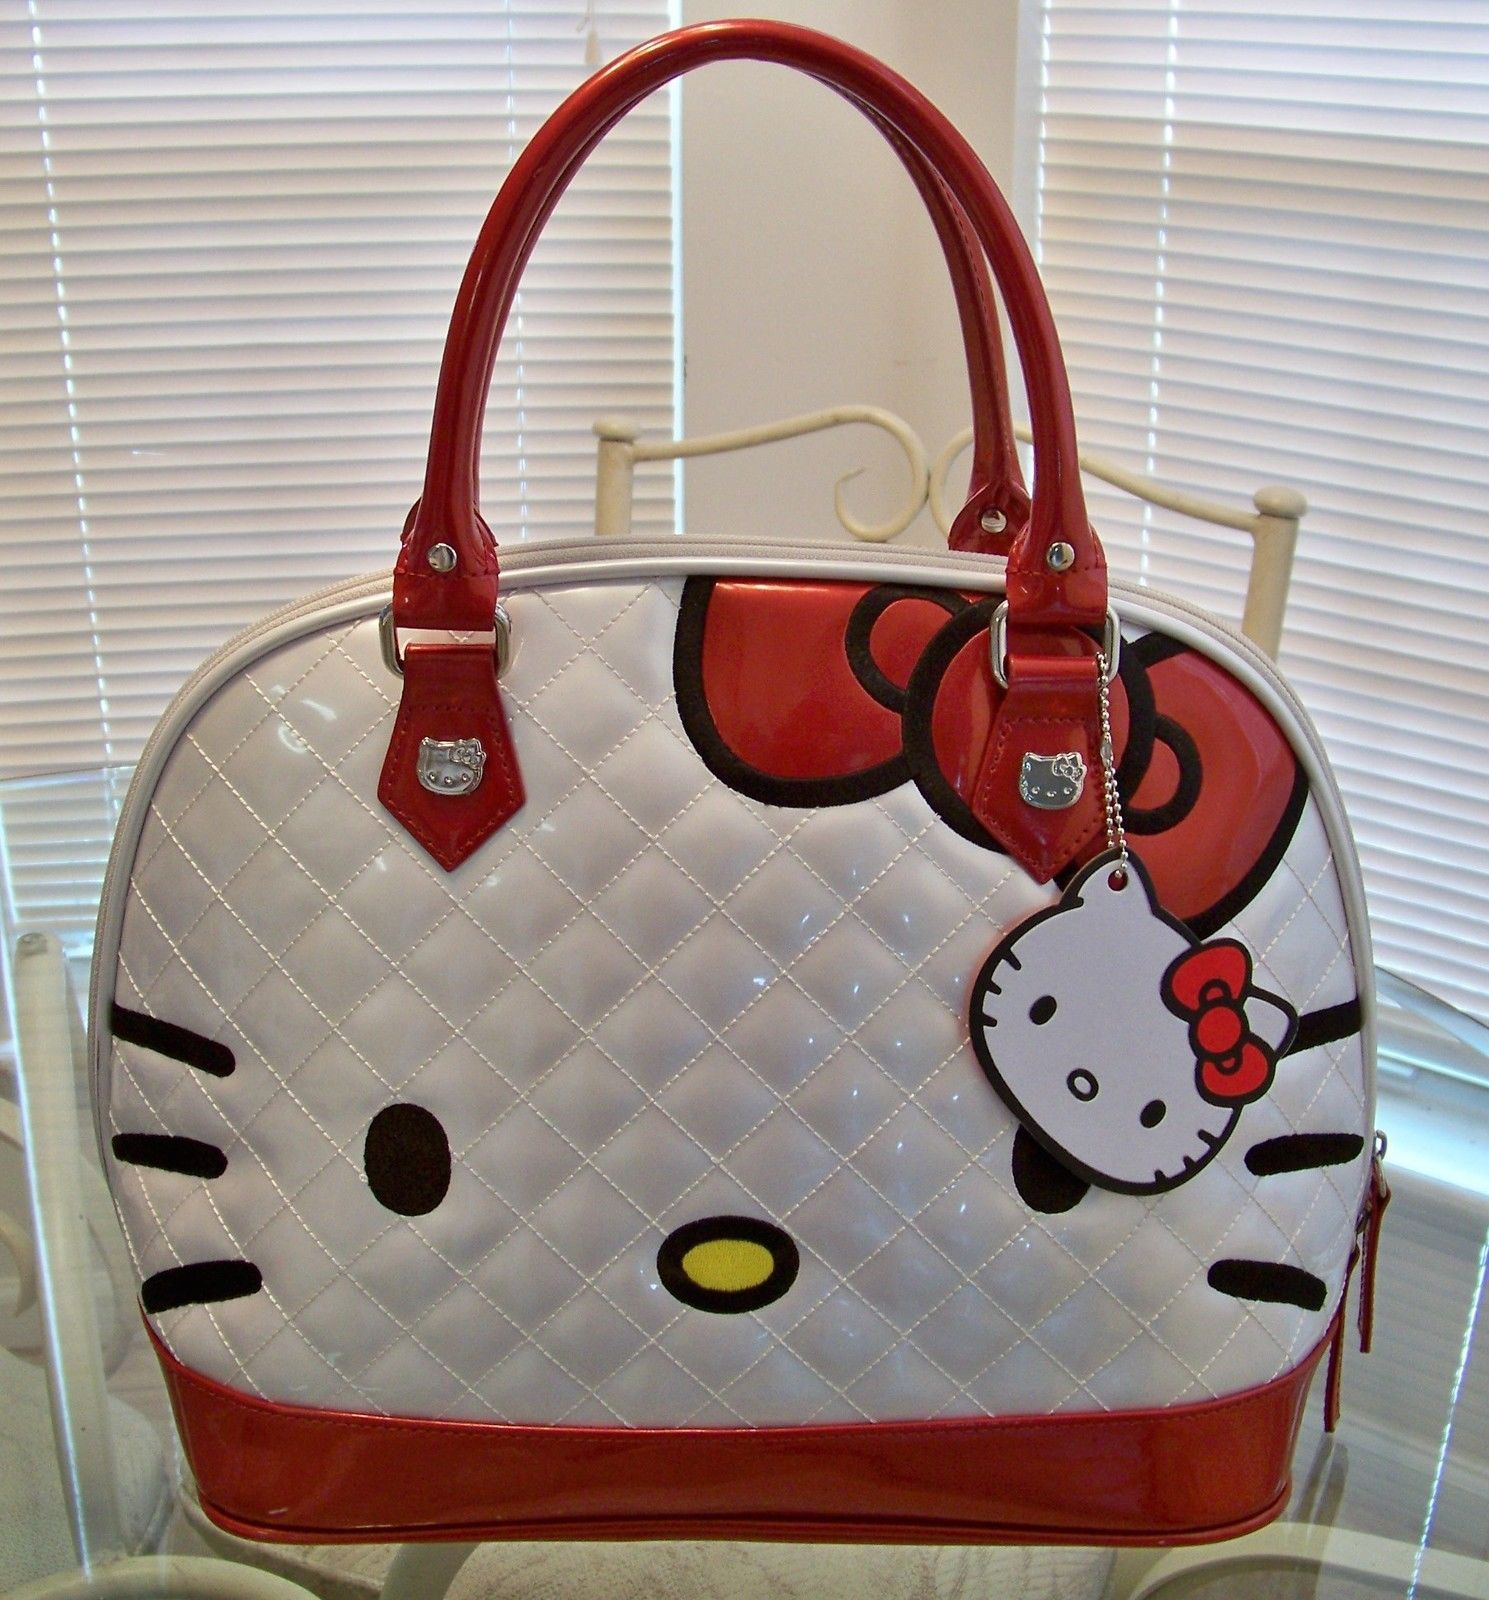 HELLO KITTY Quilted White Red Patent Dome Satchel Bag by Loungefly ... : hello kitty quilted purse - Adamdwight.com